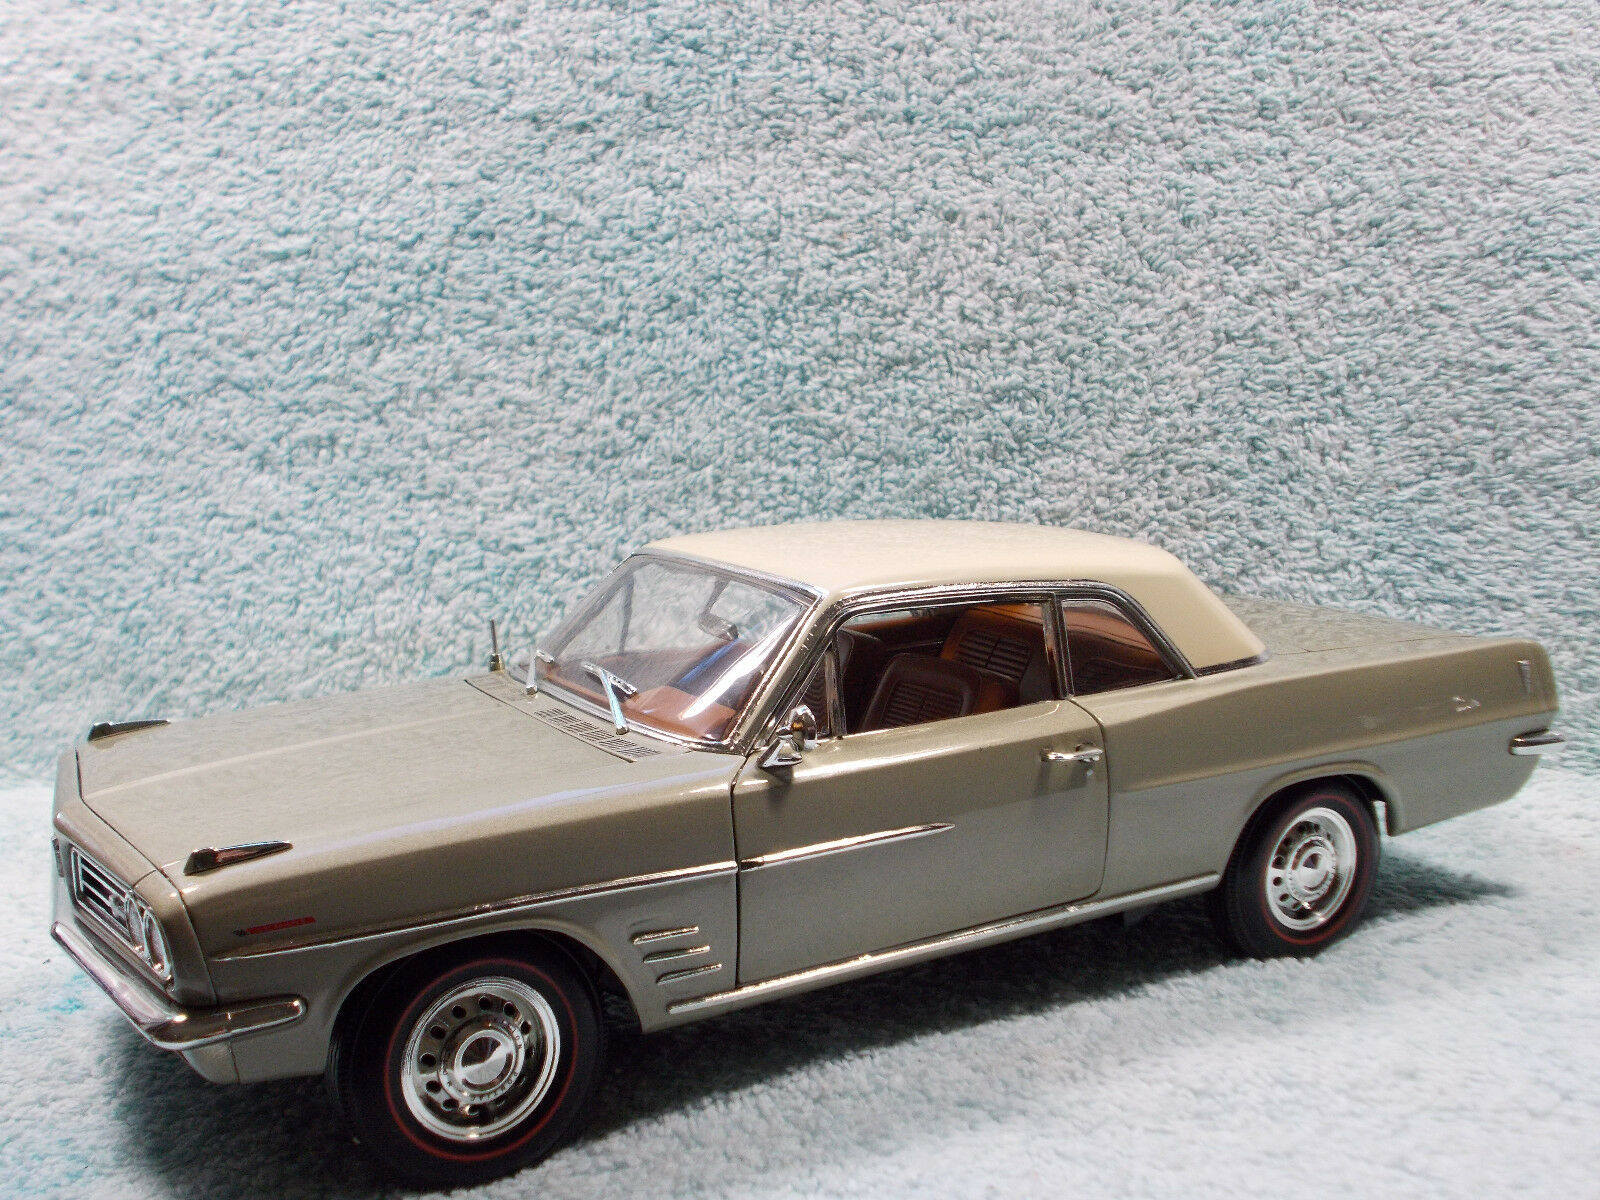 1/18 DIECAST 1963 PONTIAC LEMANS HARDTOP IN METALLIC LIME GREEN BY HIGH WAY 61.